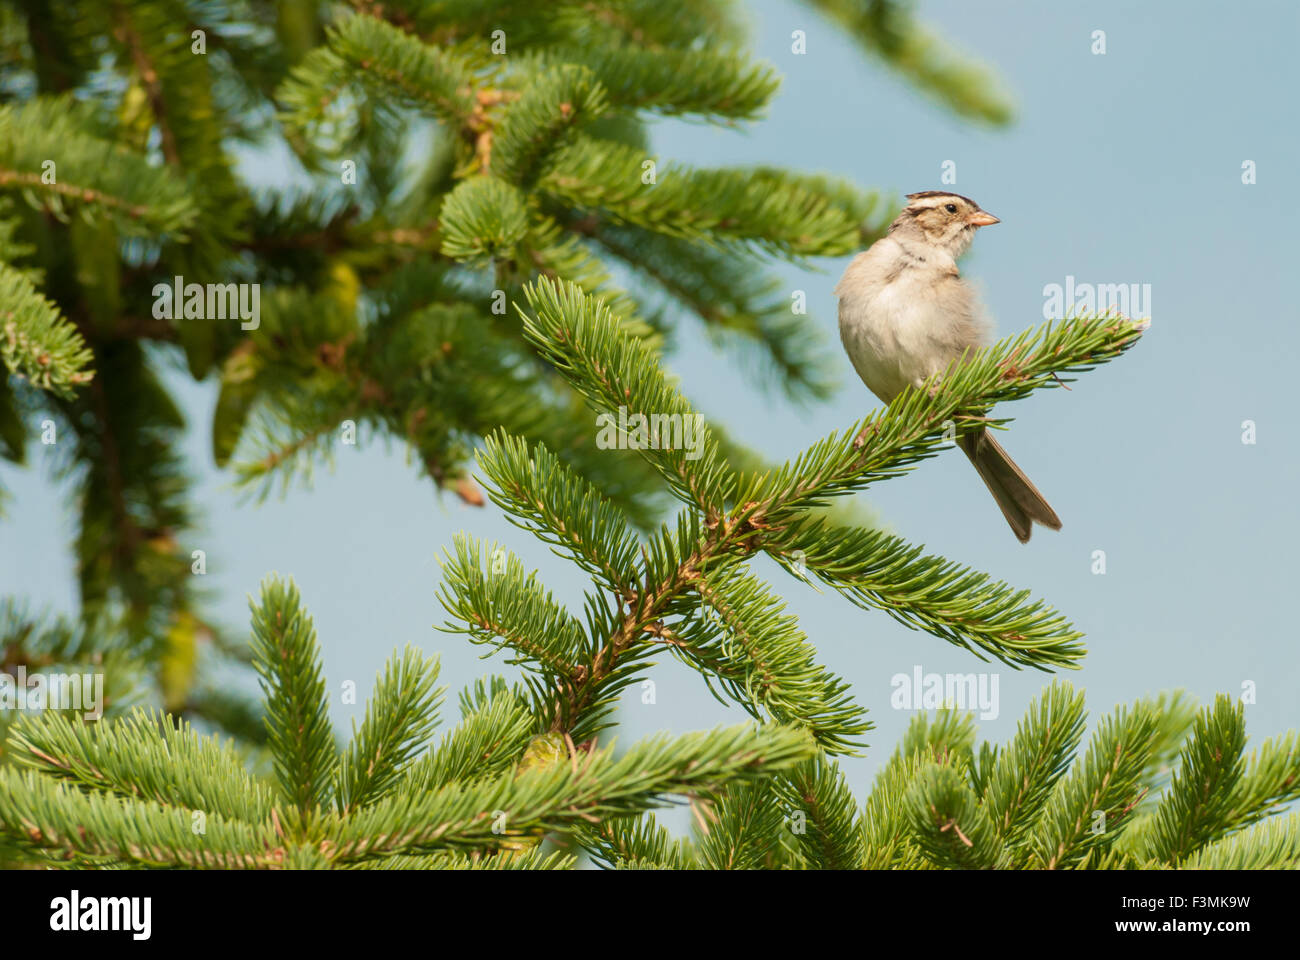 Clay-colored sparrow, Spizella pallida, perched on a conifer branch, St Albert, Alberta, Canada - Stock Image